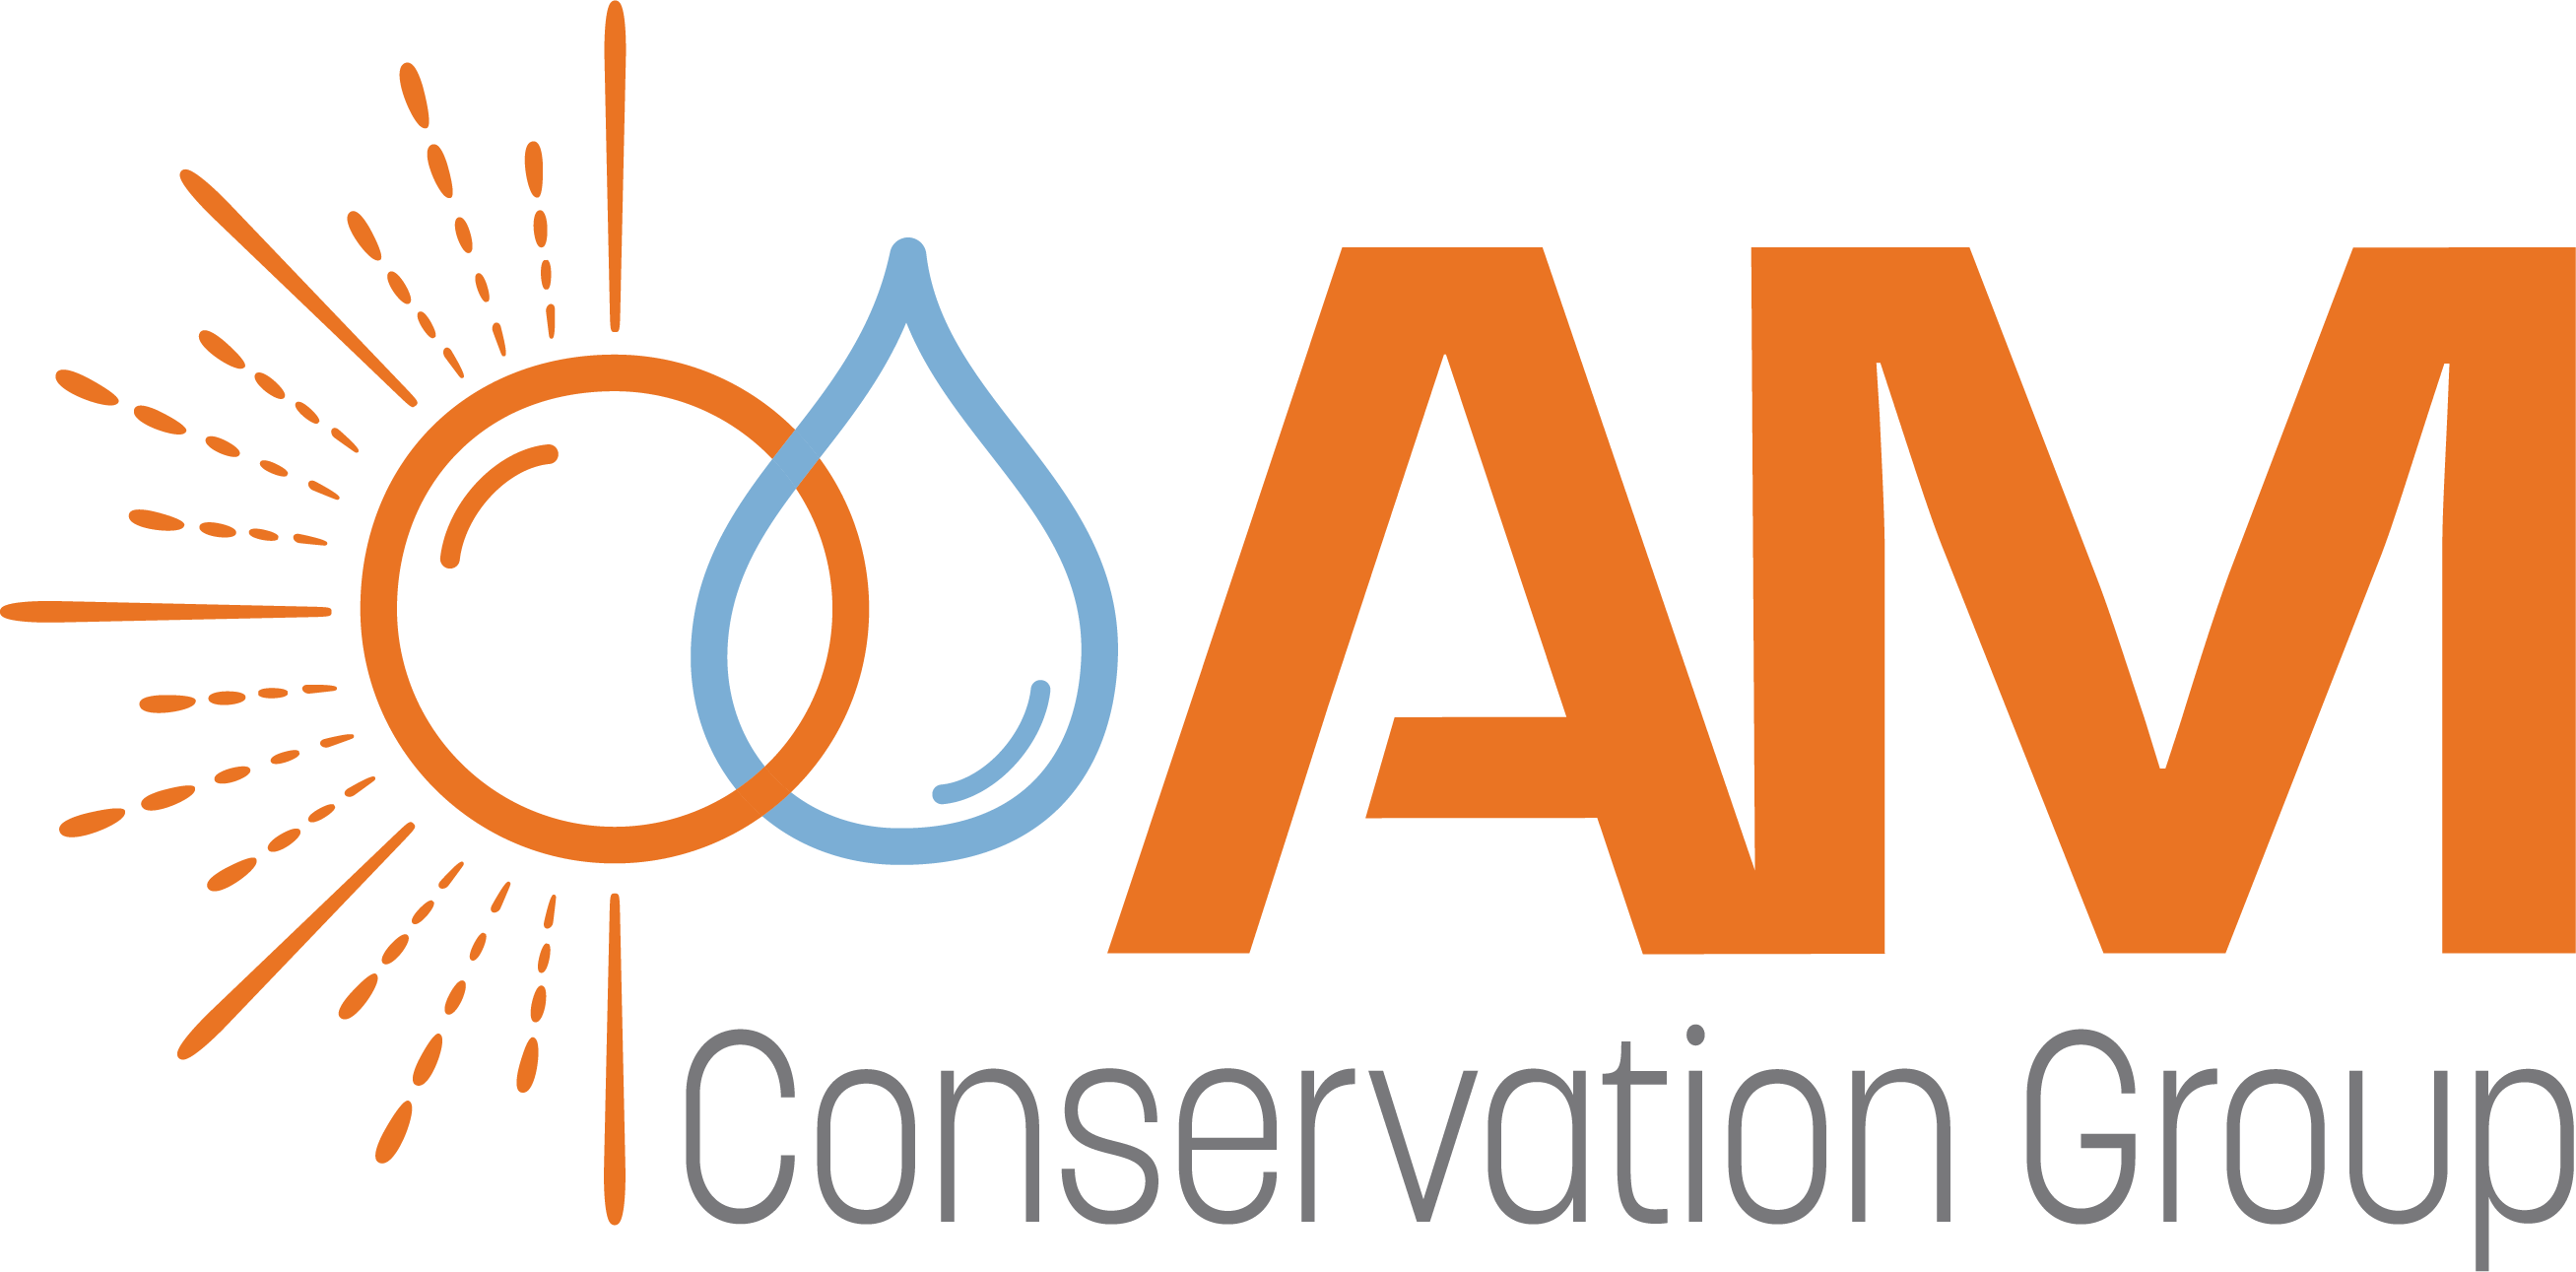 am conservation logo 5 4 17 ol berkeley county library system